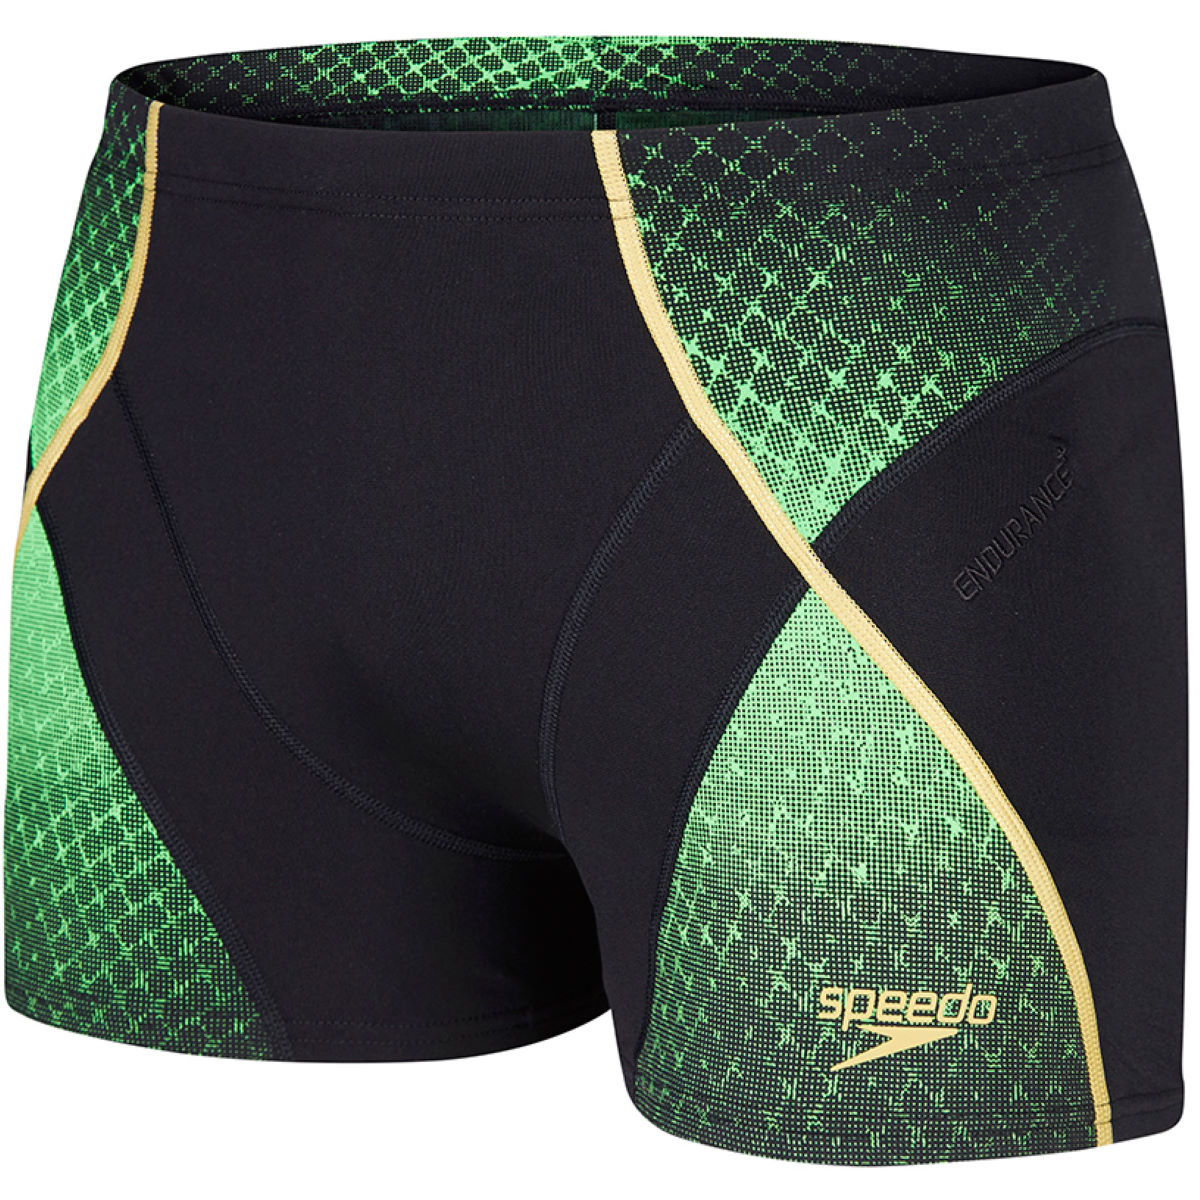 Boxer de bain Speedo Fit Pinnacle (PE16) - 28'' Black/Green/Gold Maillots de bain Adulte